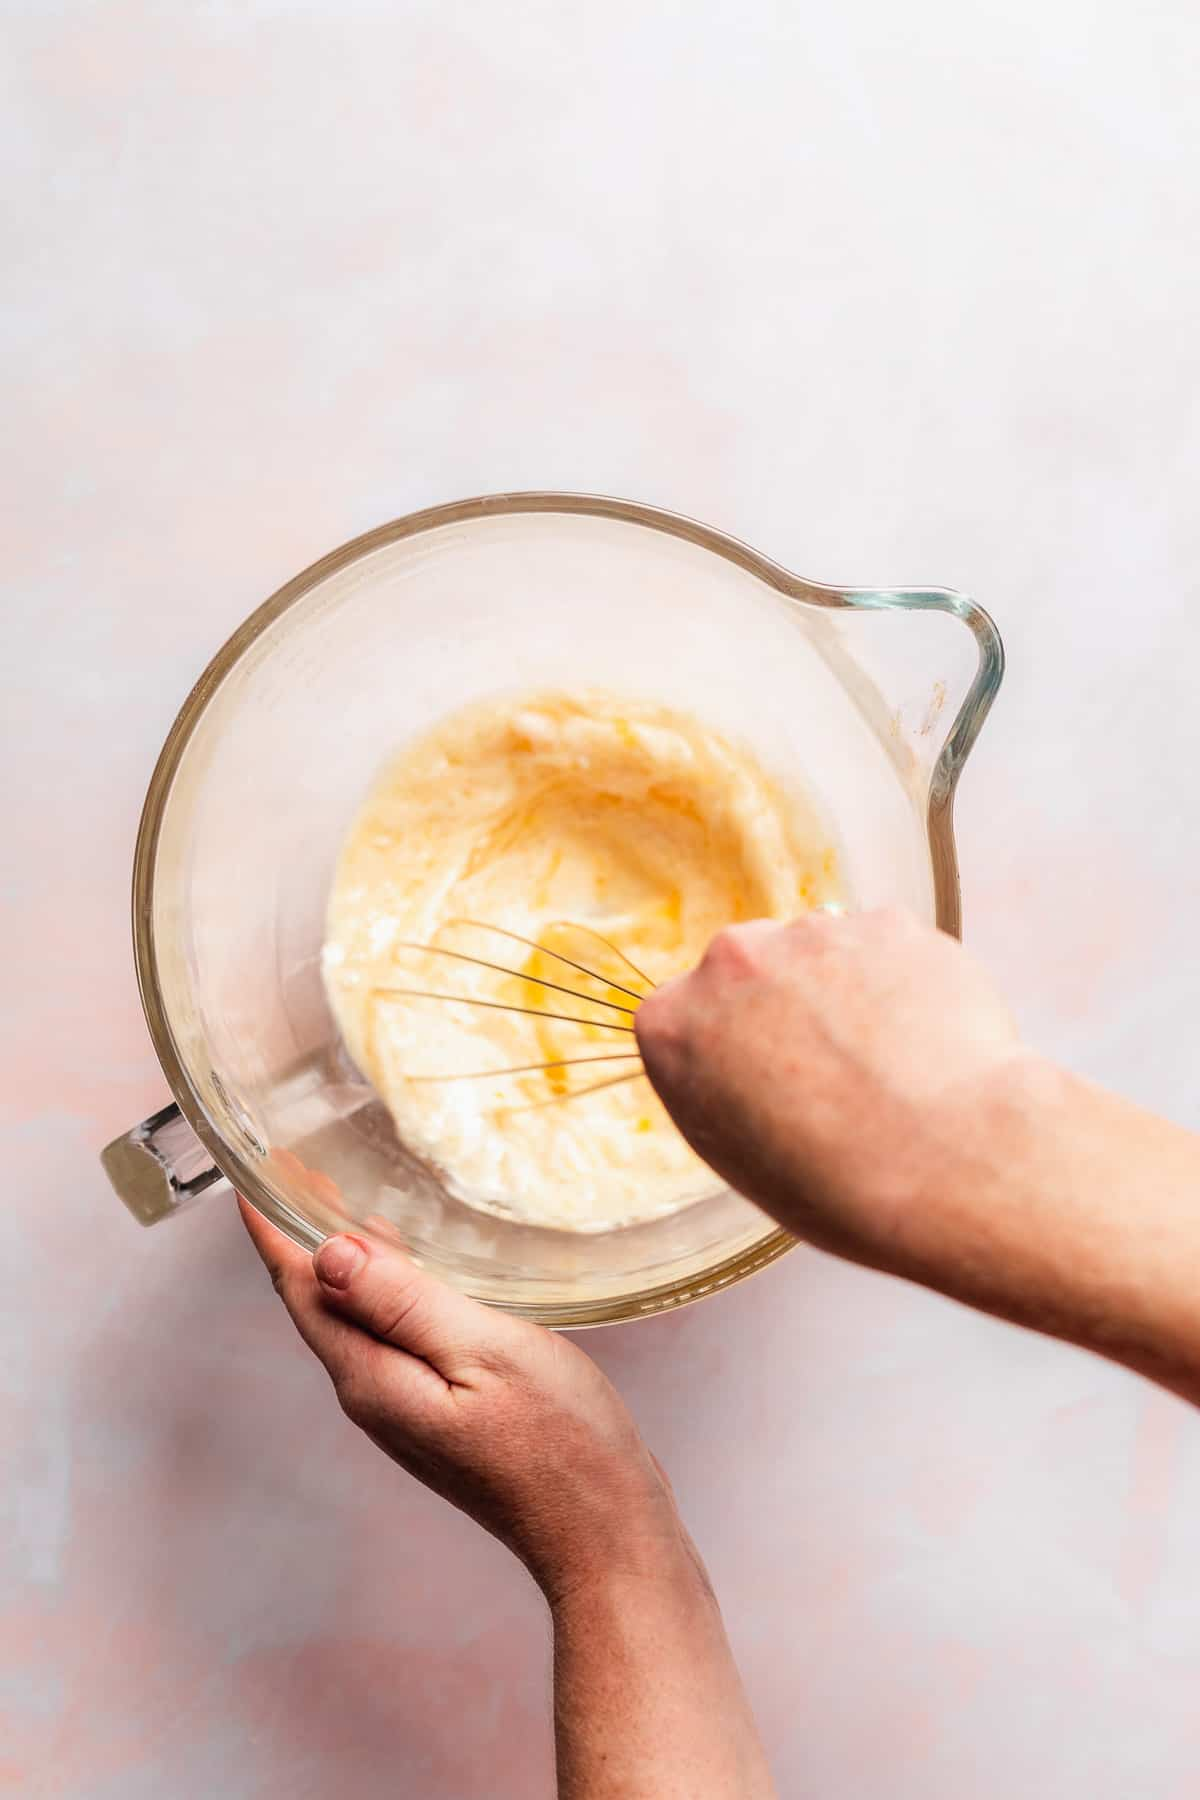 Person whisking a mixture in a glass mixing bowl.